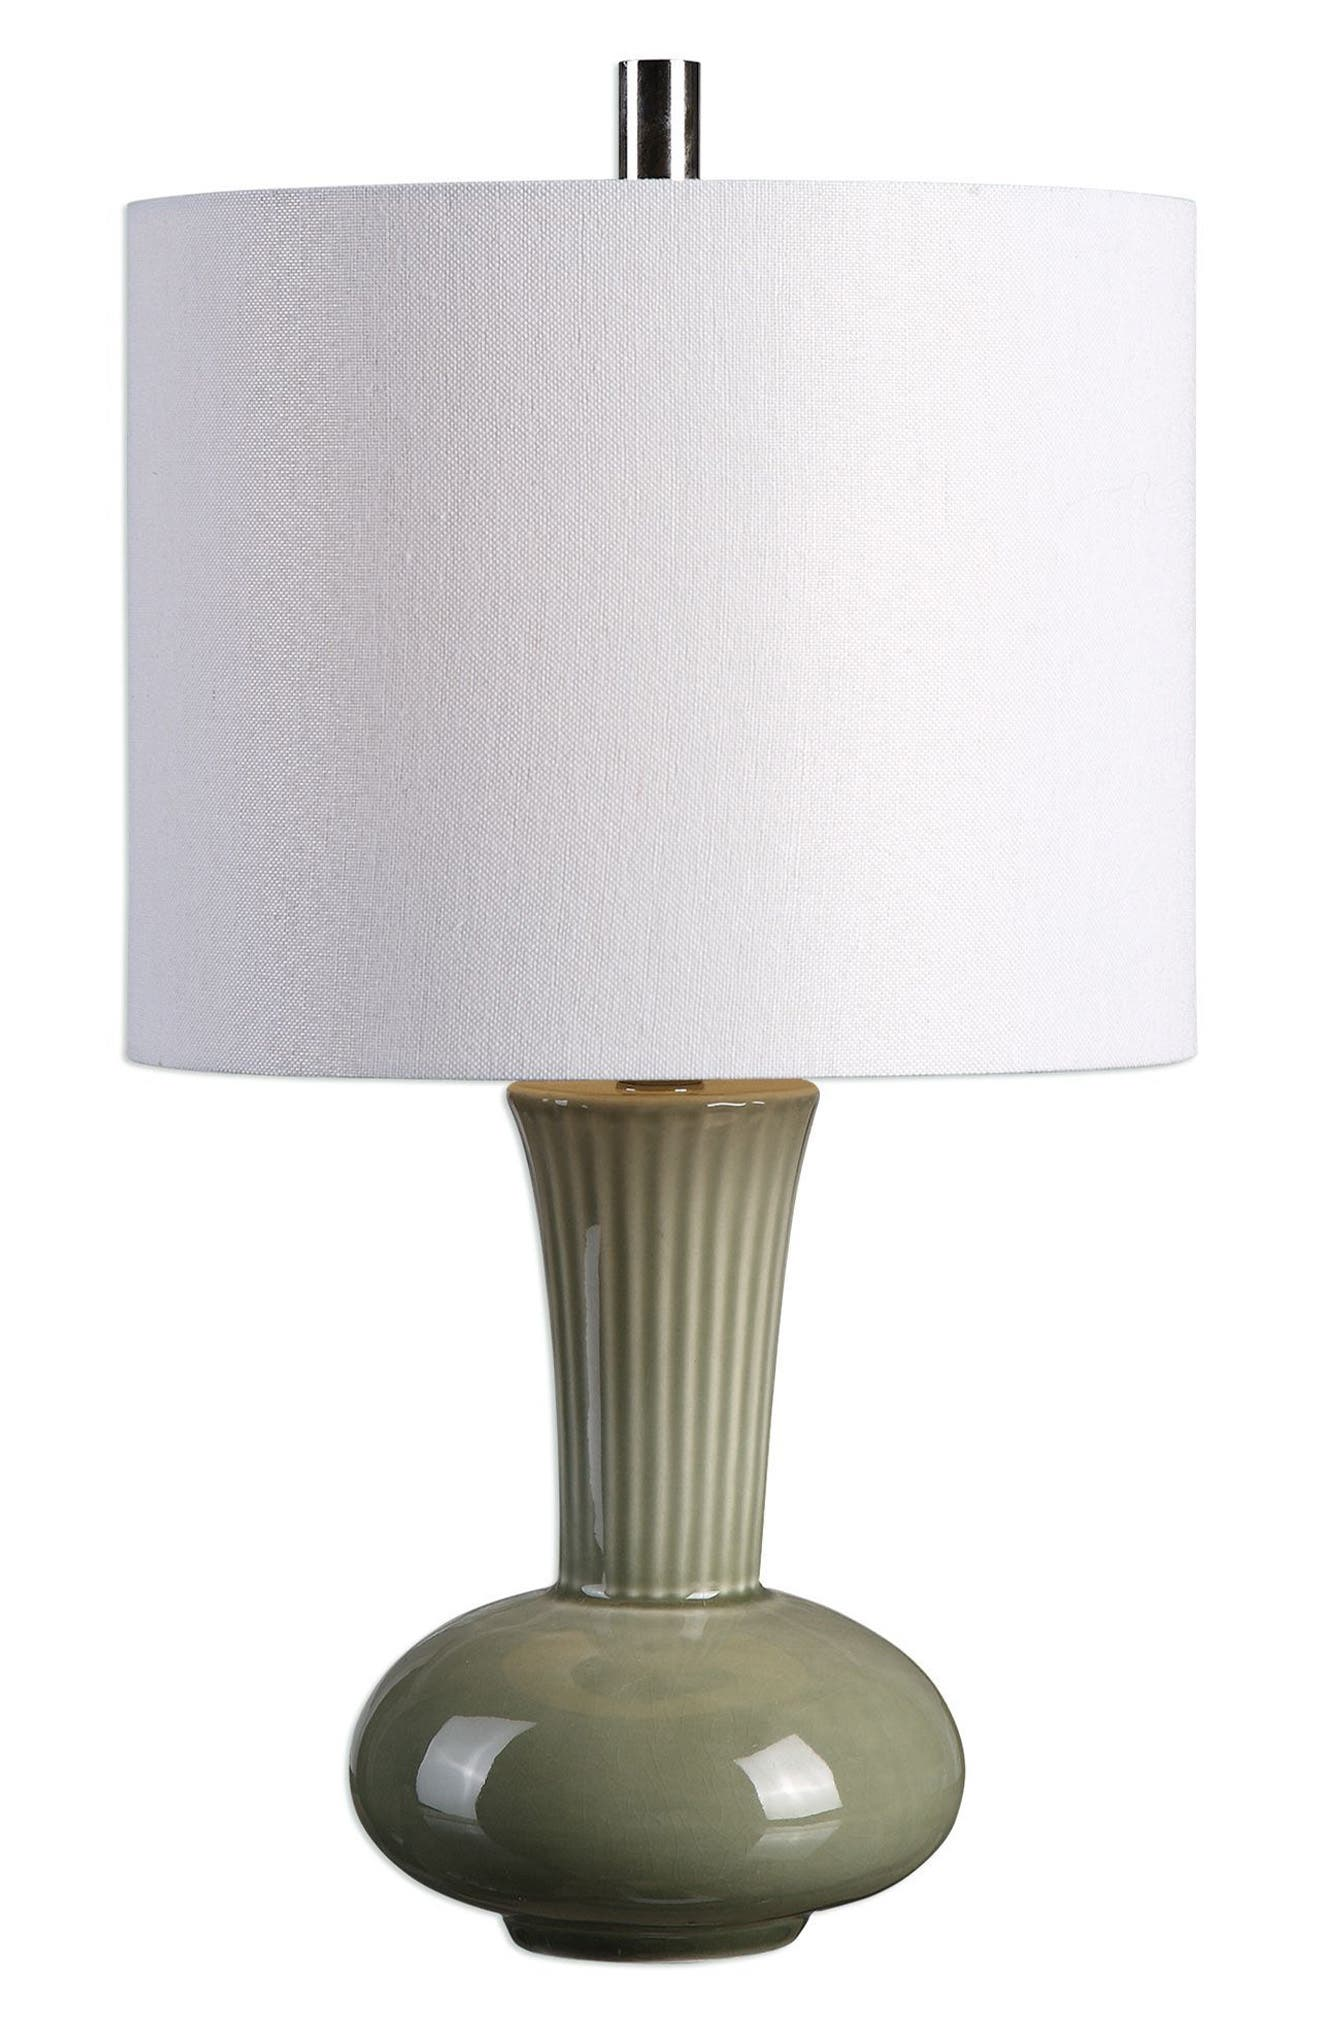 Luray Table Lamp,                         Main,                         color, Green